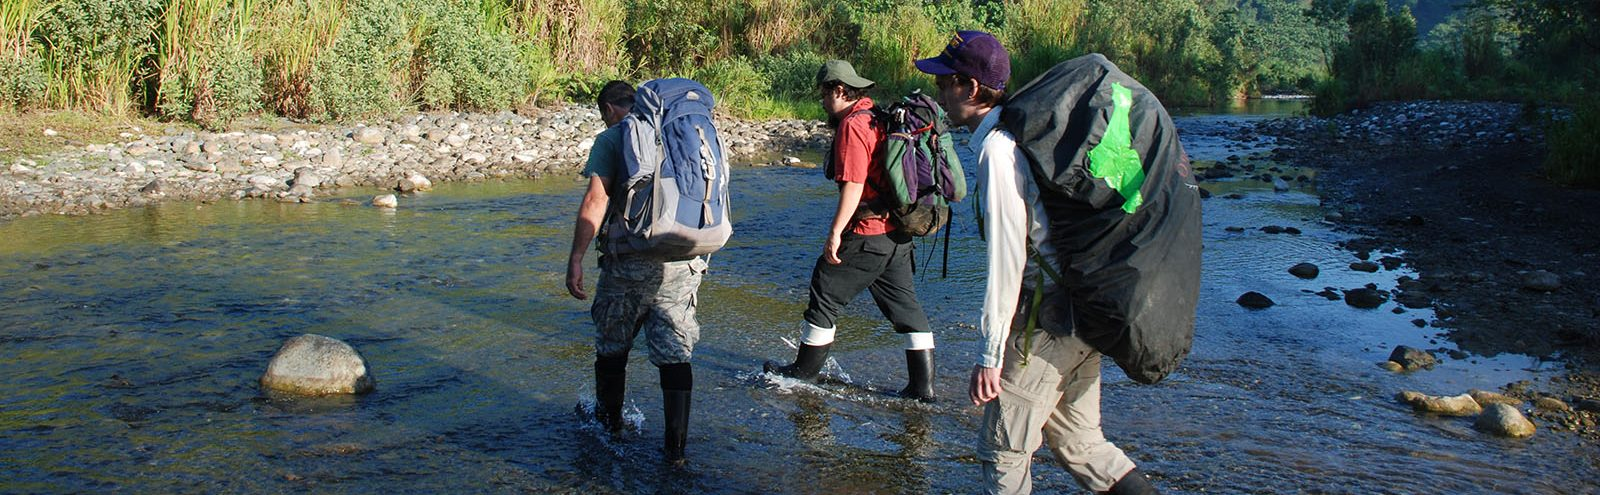 Three researchers walking through stream